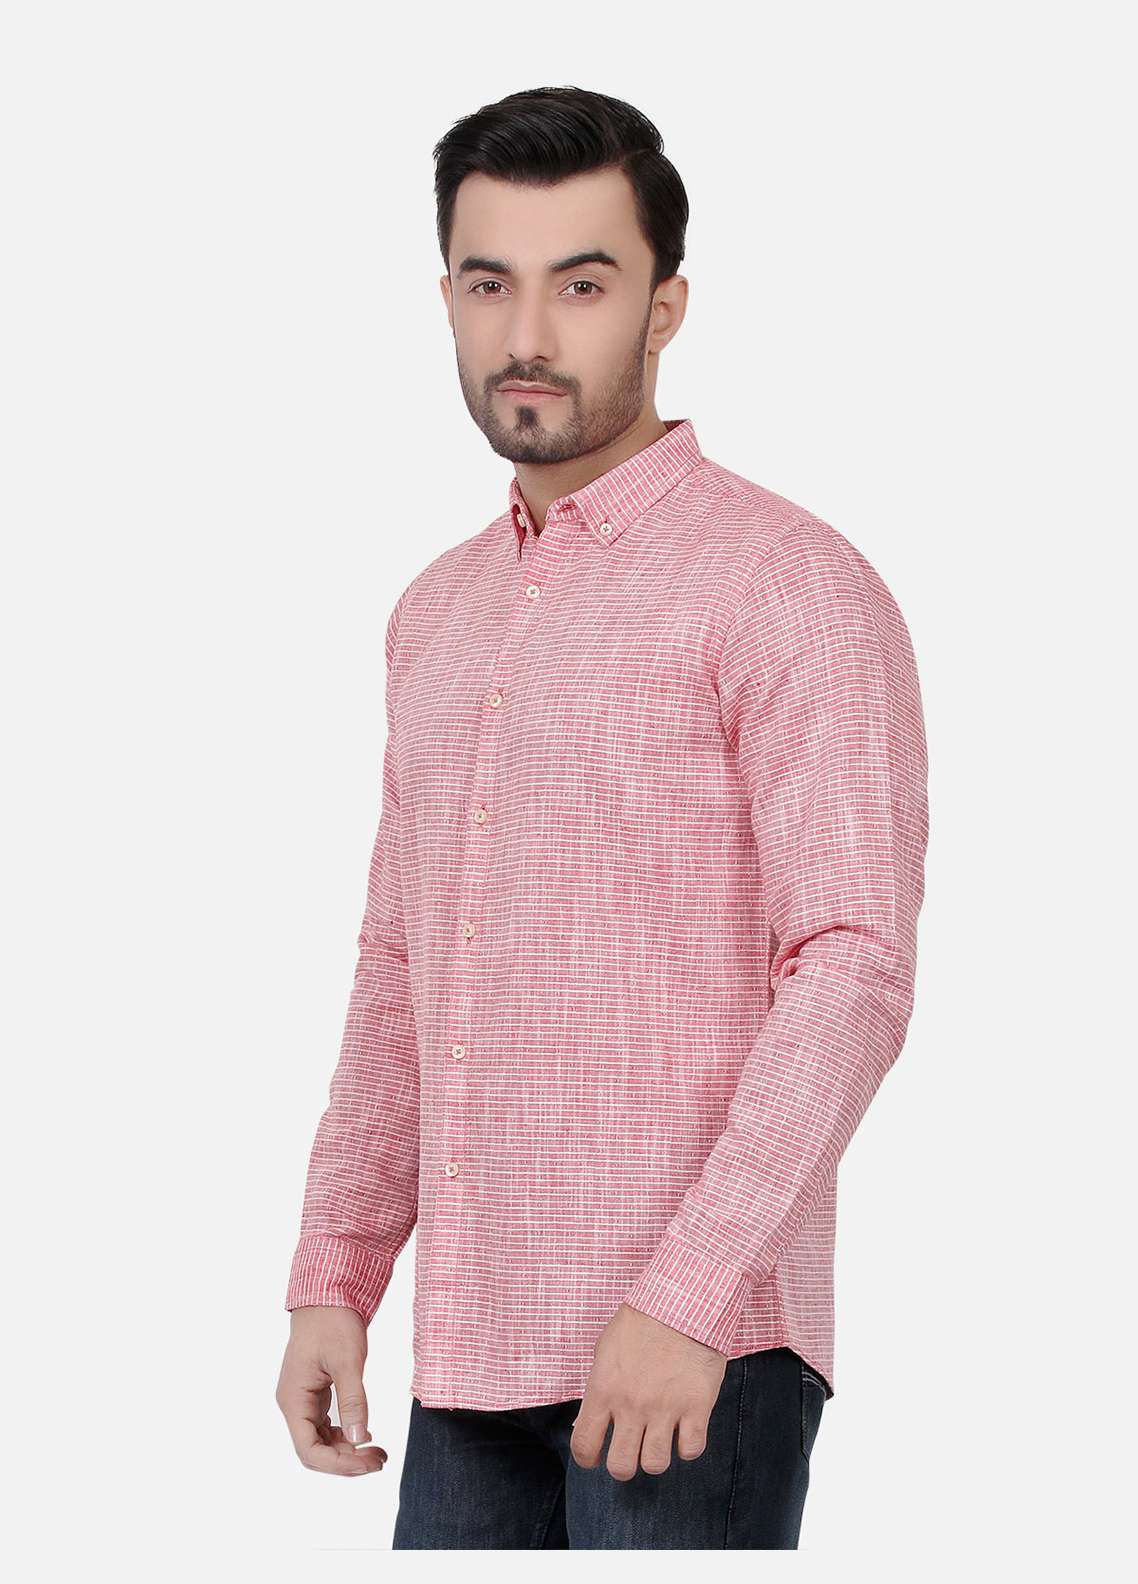 Furor  Casual Shirts for Men - Red FRM18CS 31193